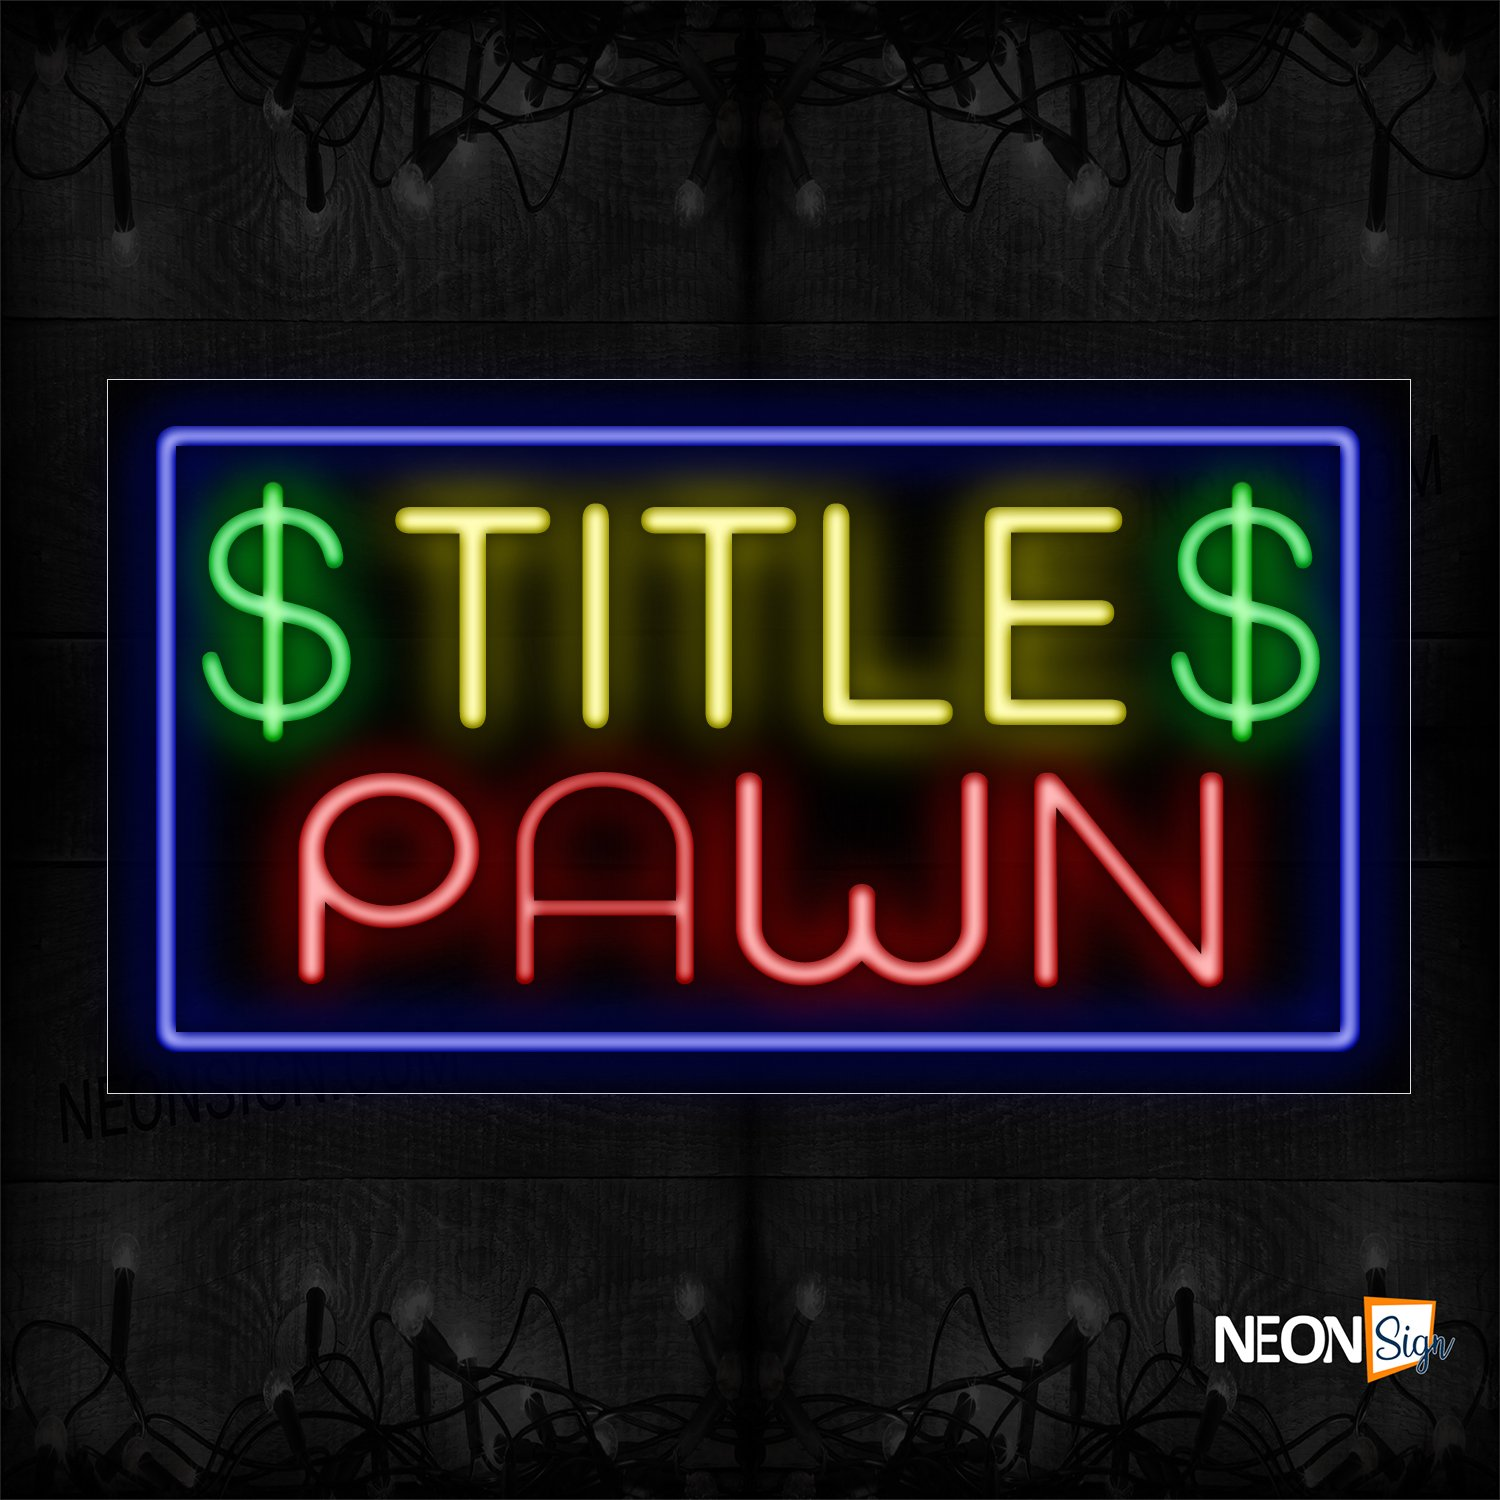 Image of 11308 $ Title $ Pawn With Blue Border Neon Sign_20x37 Black Backing